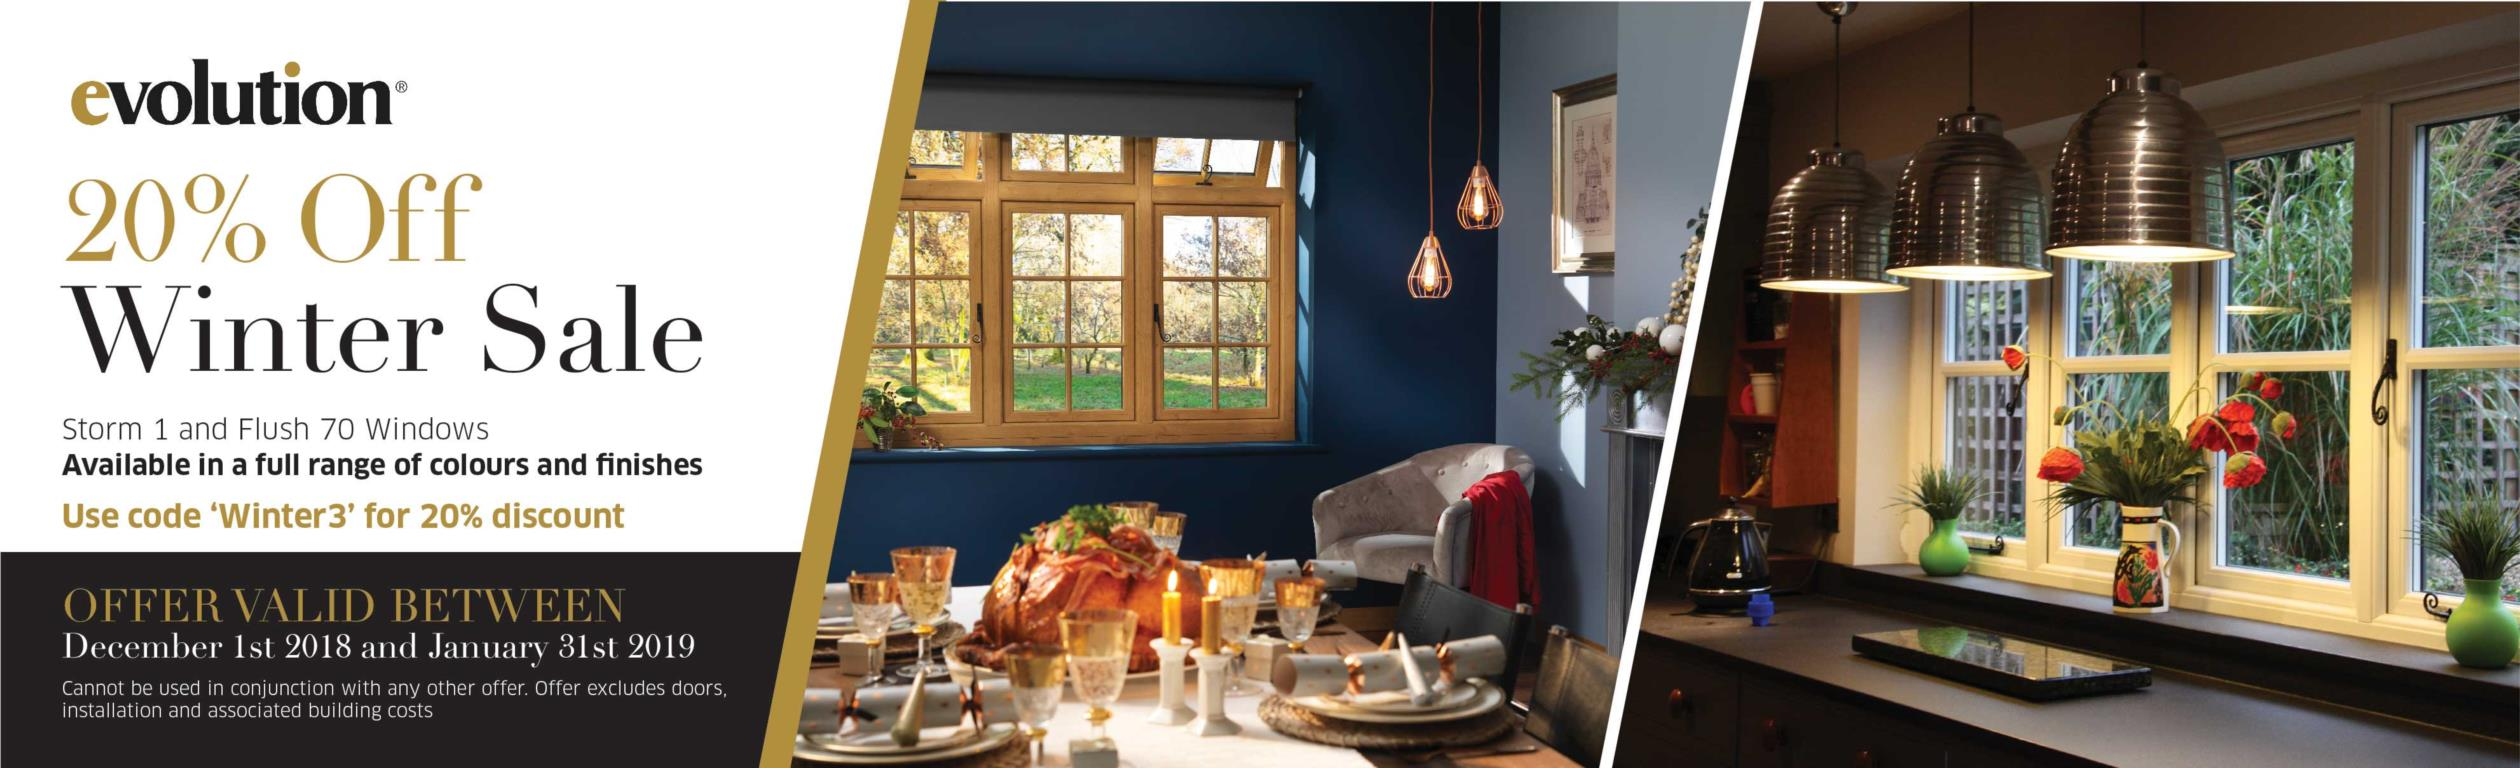 Timber Alternative windows offer